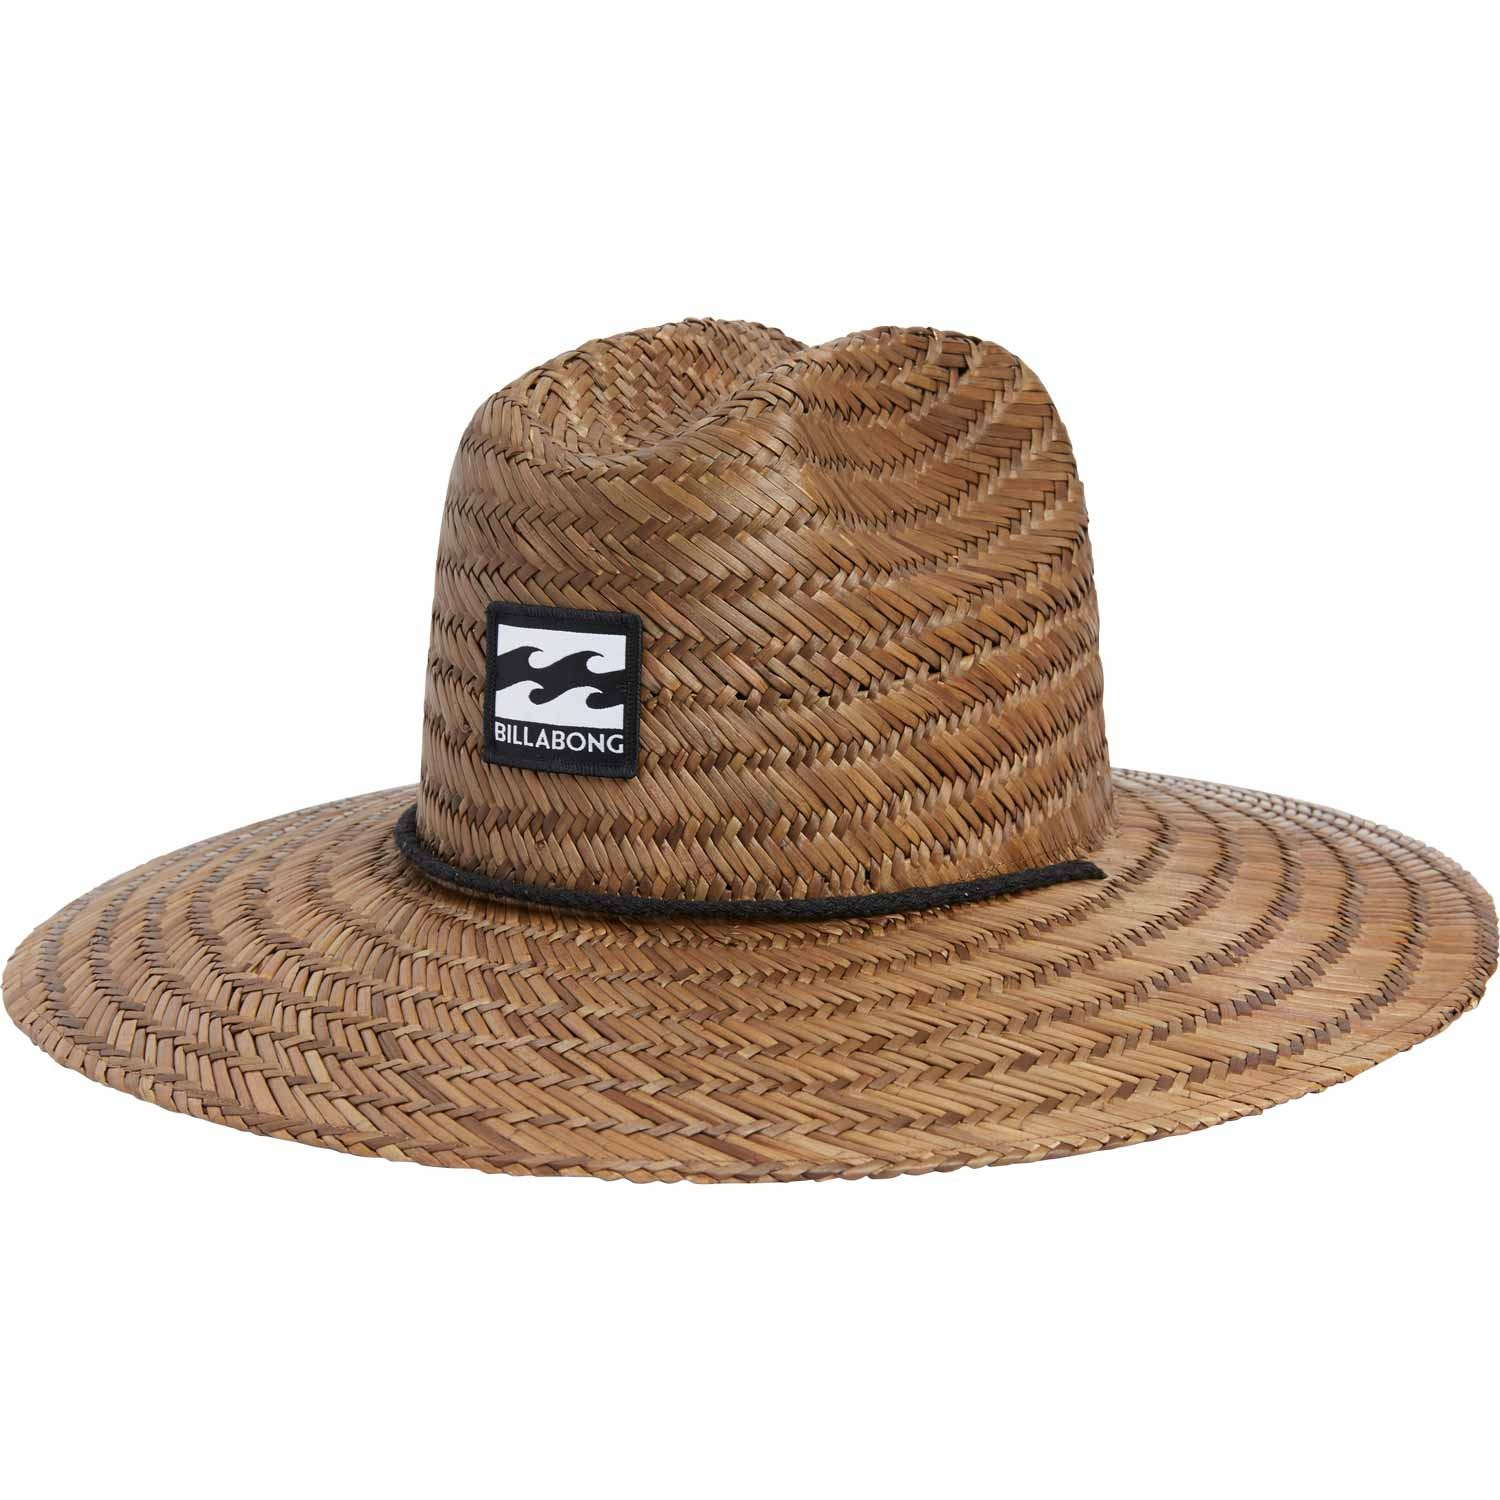 Billabong Tides Straw Lifeguard Hat Mens Divers Direct